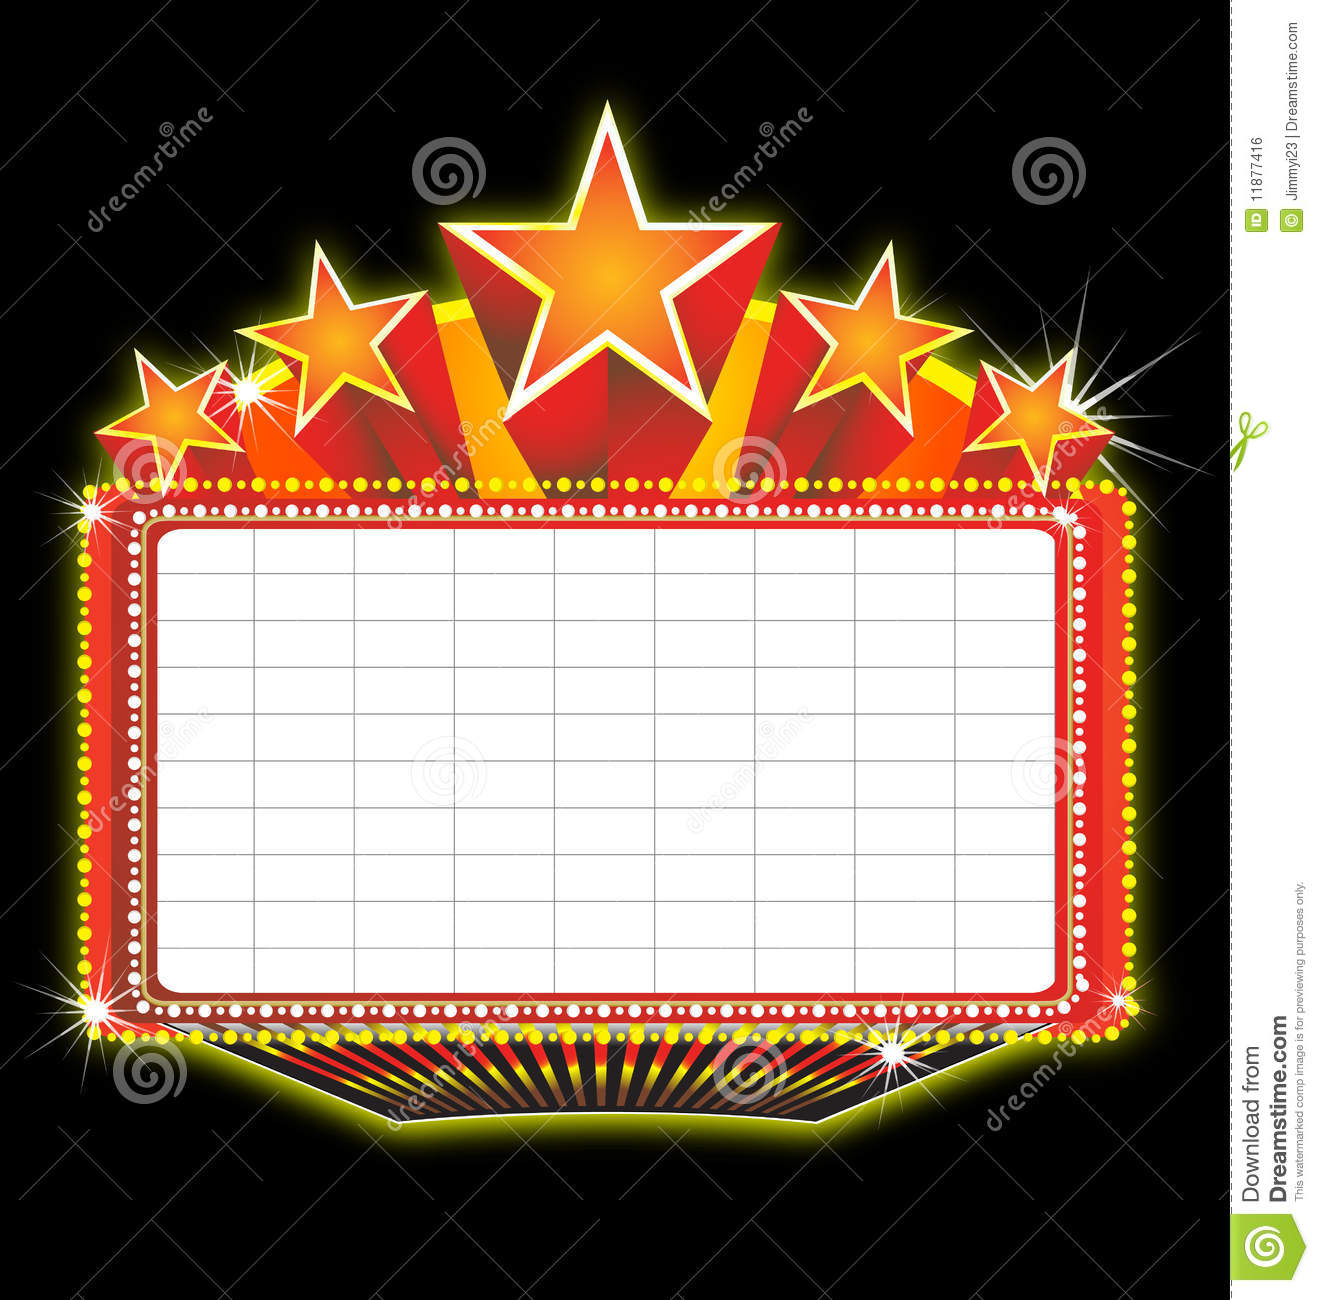 Theater marquee sign stock vector. Illustration of sketches.